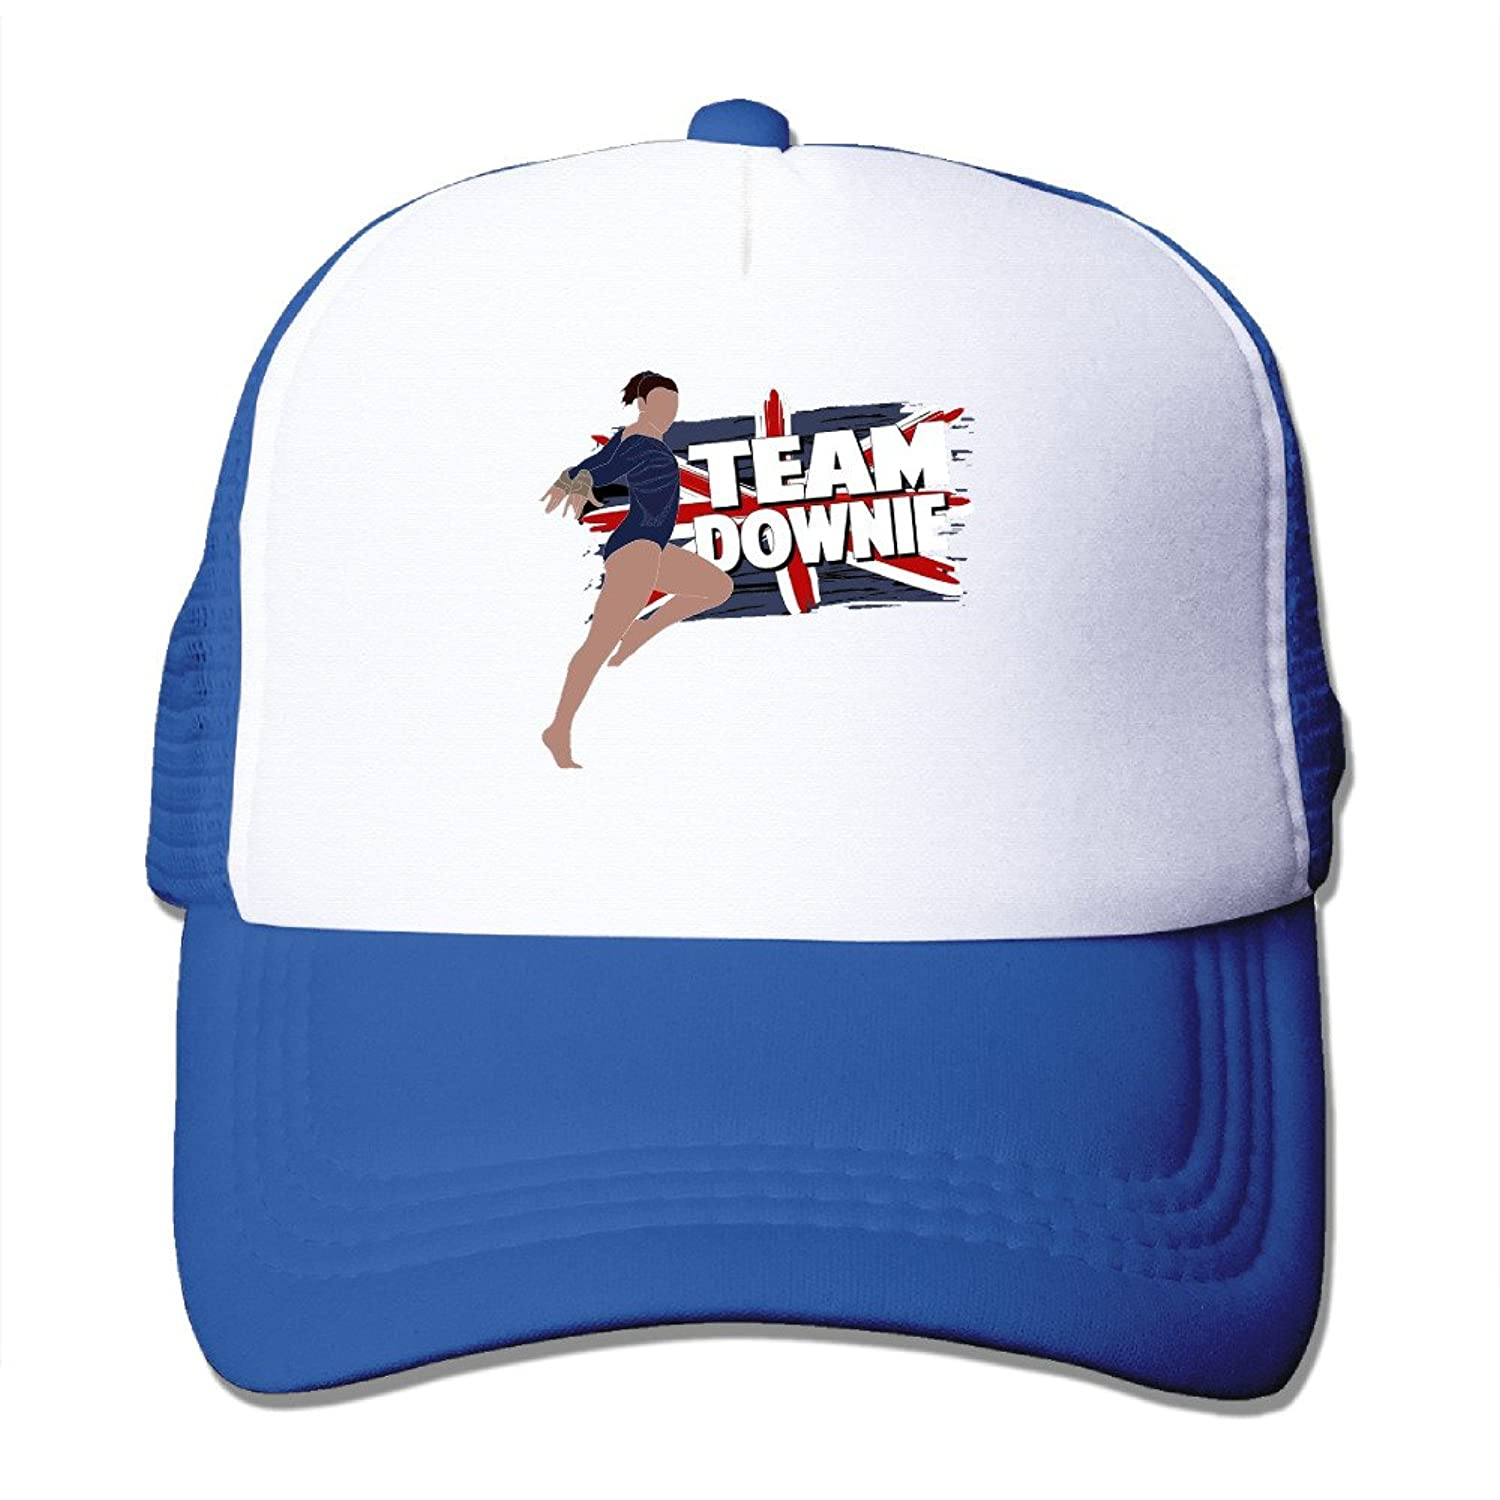 Retro Team Ellie Downie GBR Olympic Adult Nylon Adjustable Mesh Hat Trucker Cap Black One Size Fits Most